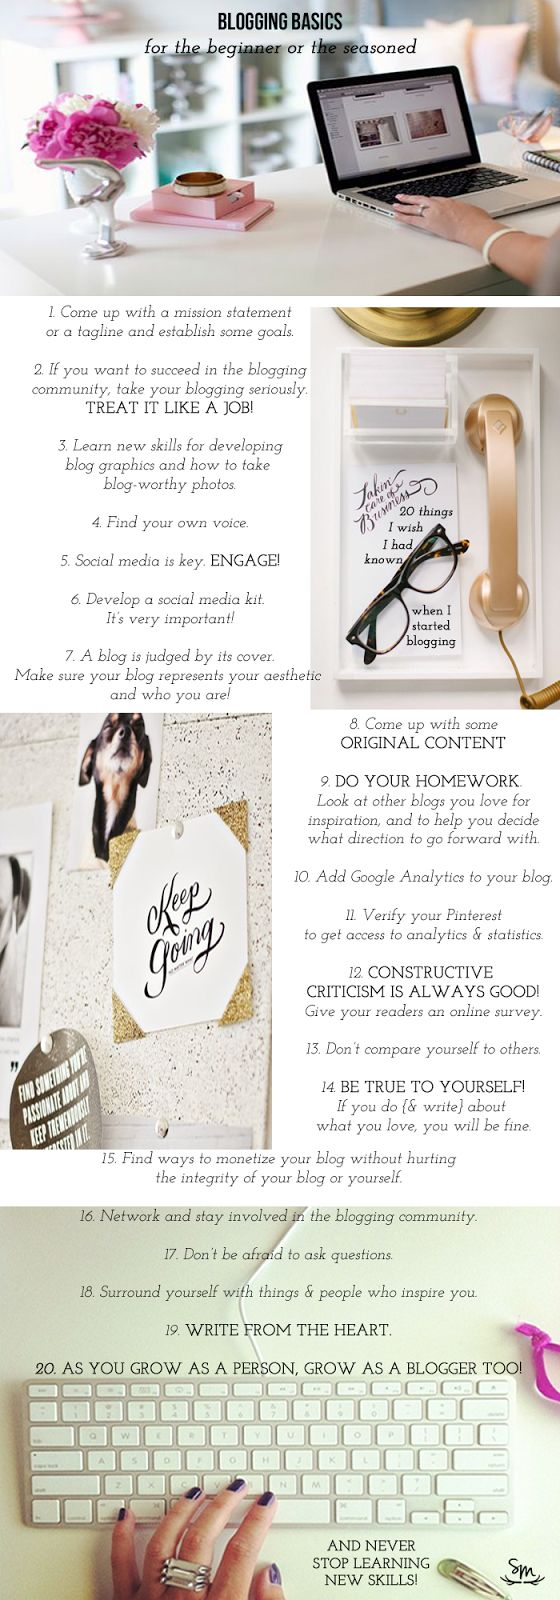 Blogging Tips | How to Blog | Blogging Basics: 20 Things I Wish I Had Known